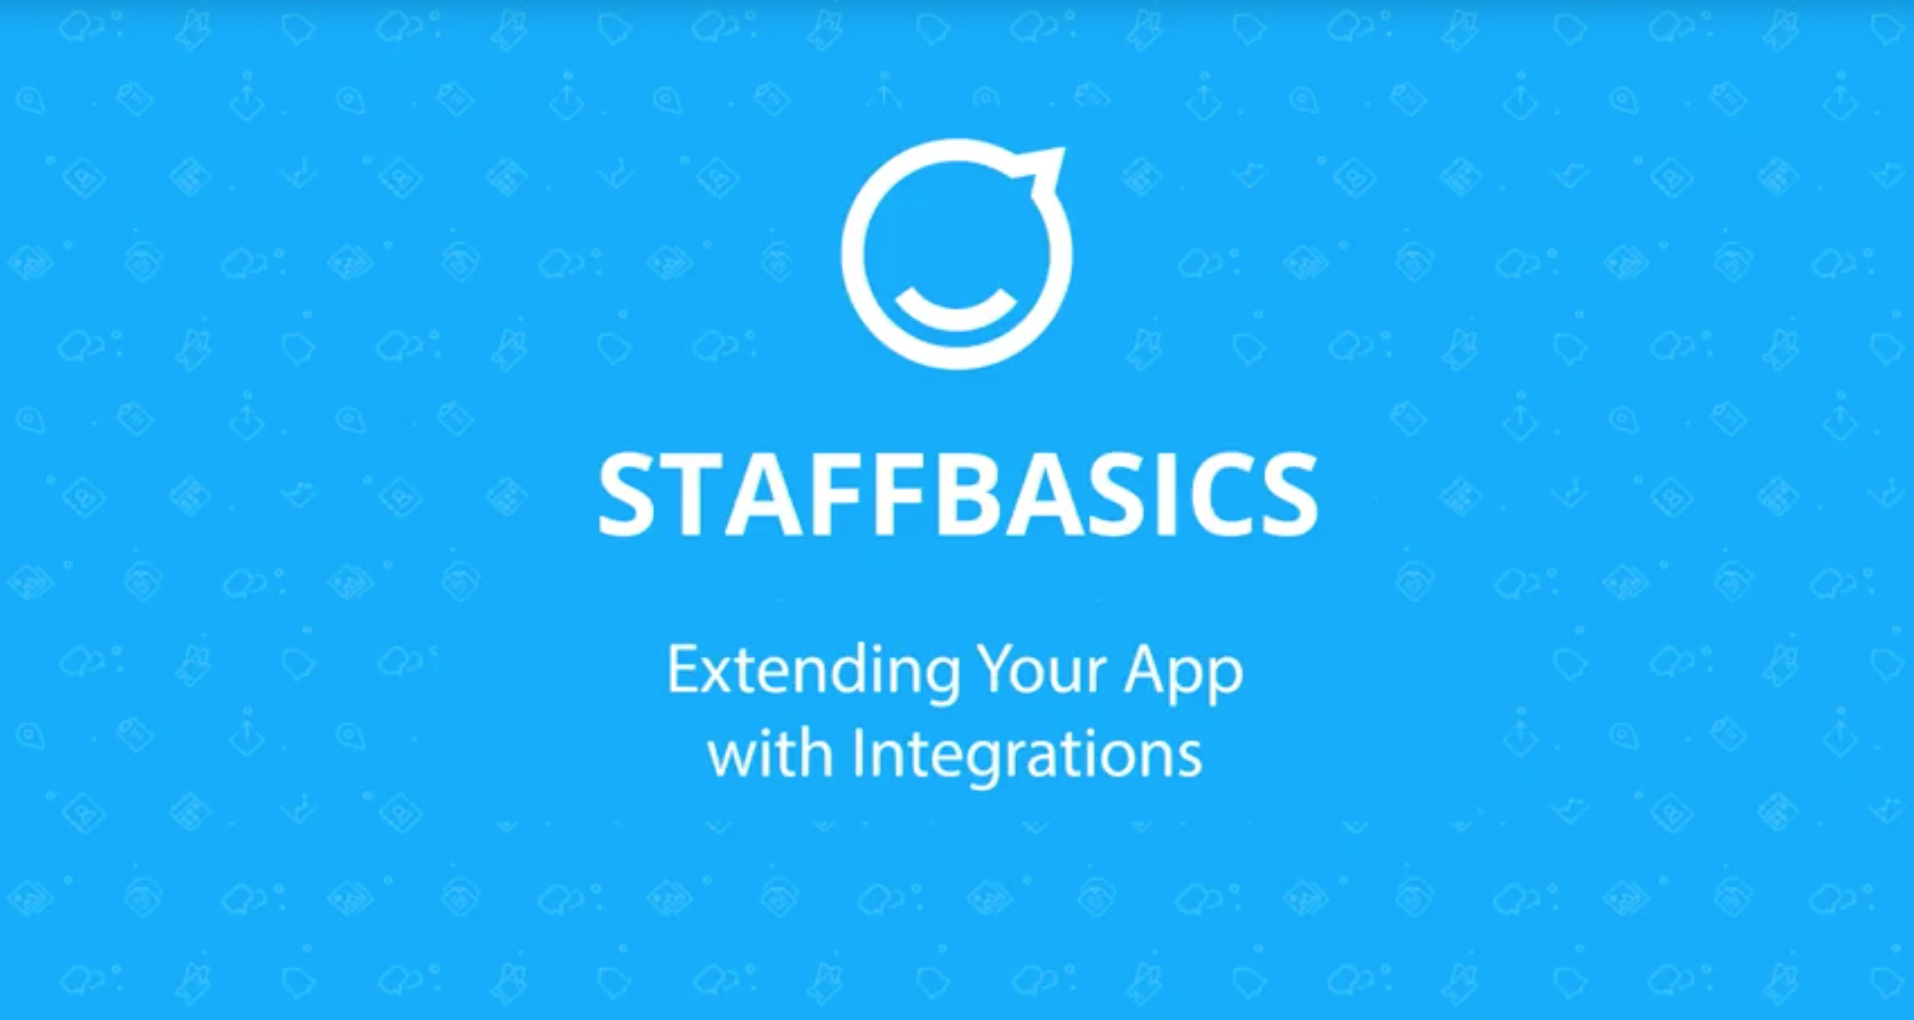 Teaser image Extending your Employee App with Integrations